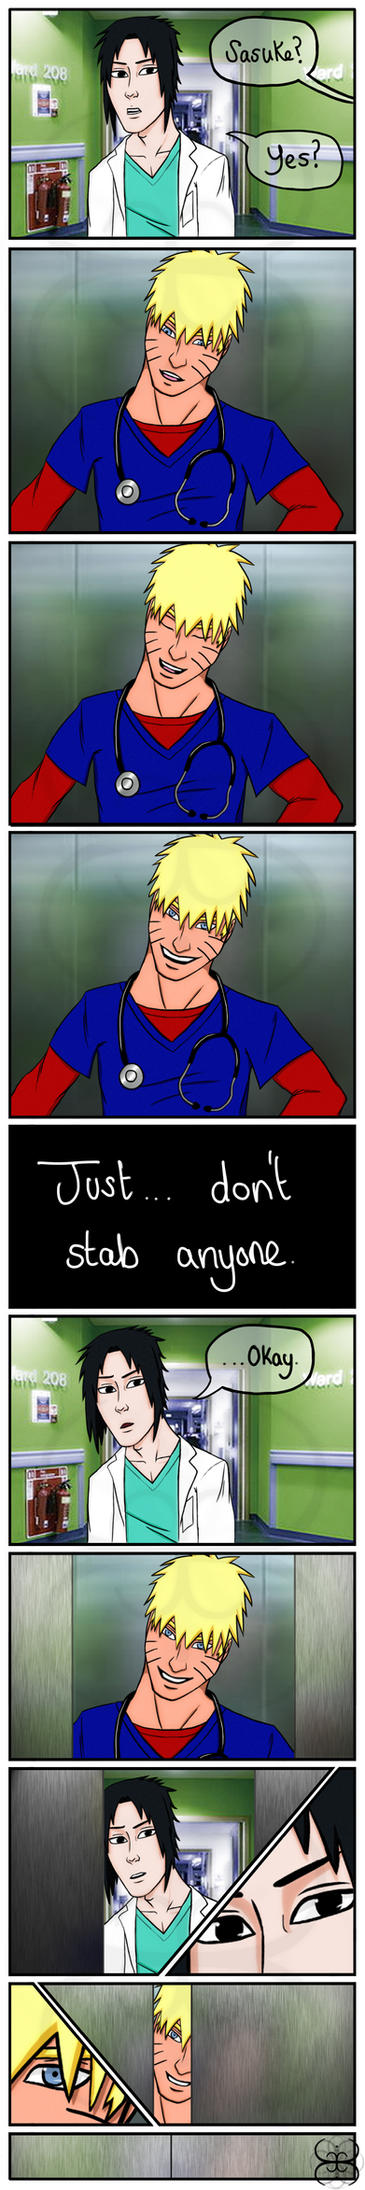 Just don't stab anyone XD by sandsoftimes